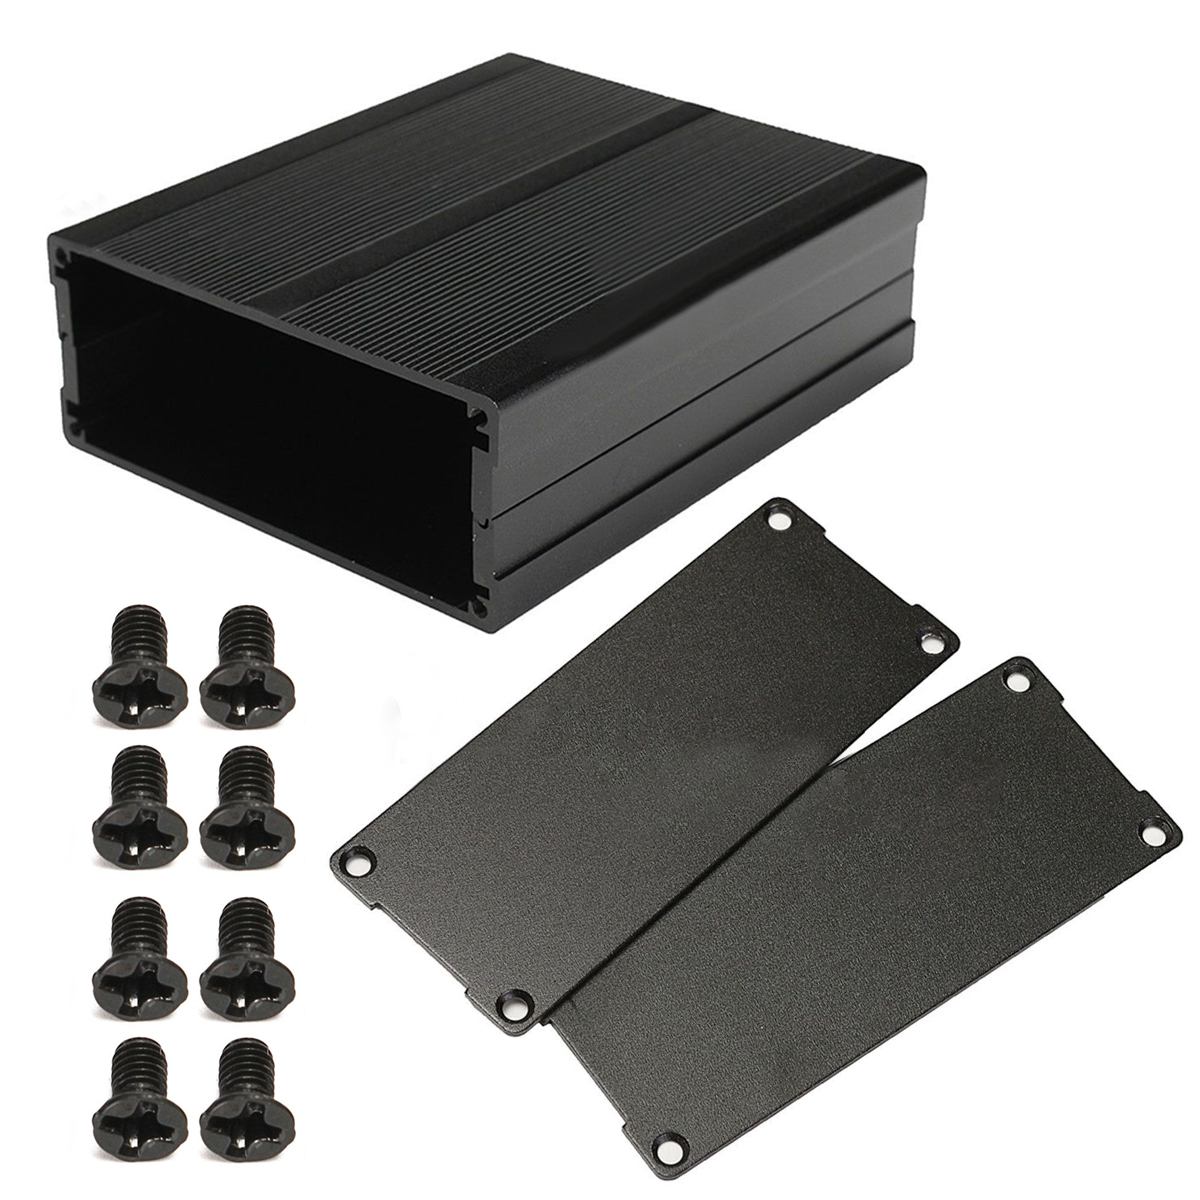 Black Split Body Mayitr Aluminum Box Enclosure DIY Instrument Case Shell for Electronic Project Amplifiers Socket 120*97*40mm 4pcs a lot diy plastic enclosure for electronic handheld led junction box abs housing control box waterproof case 238 134 50mm